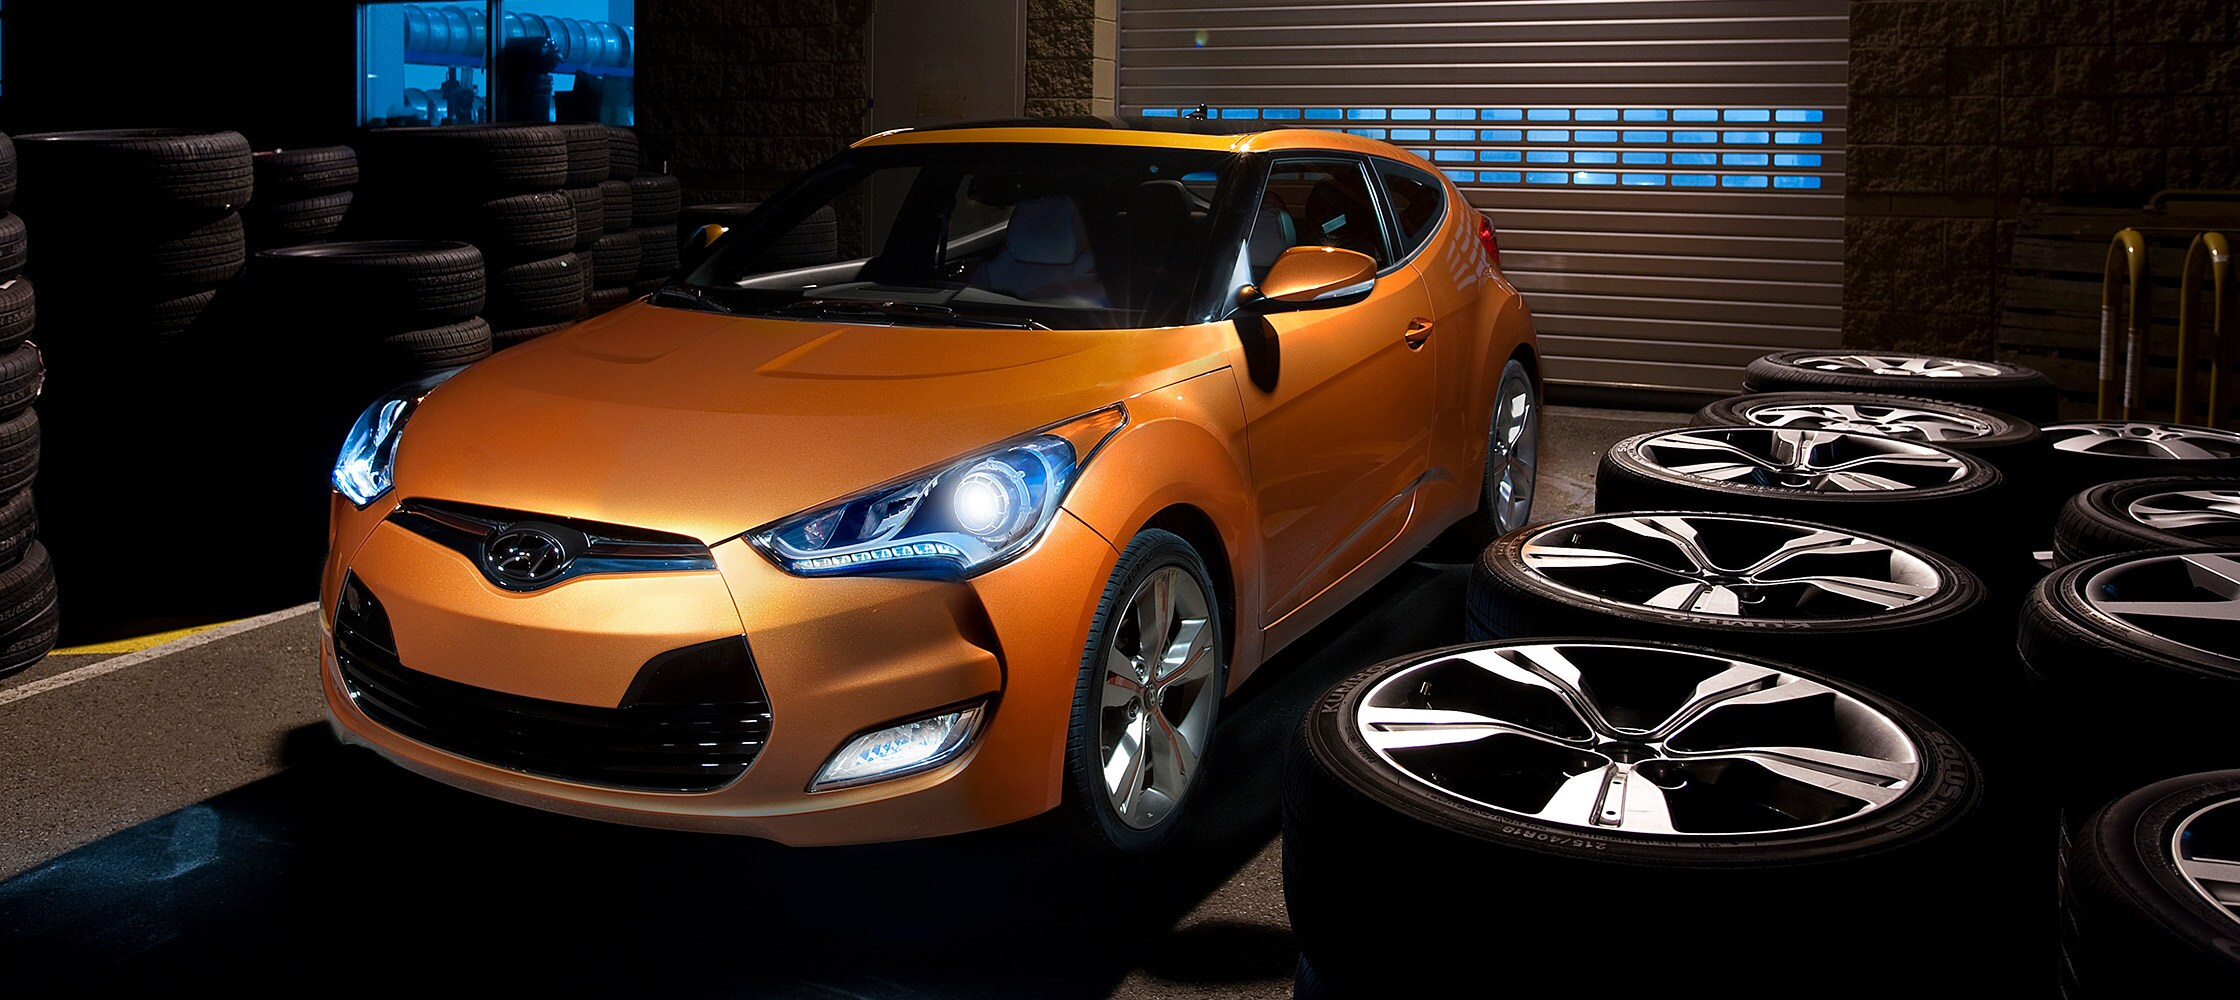 Exterior photo of orange Hyundai Veloster 2016 three door hatchback